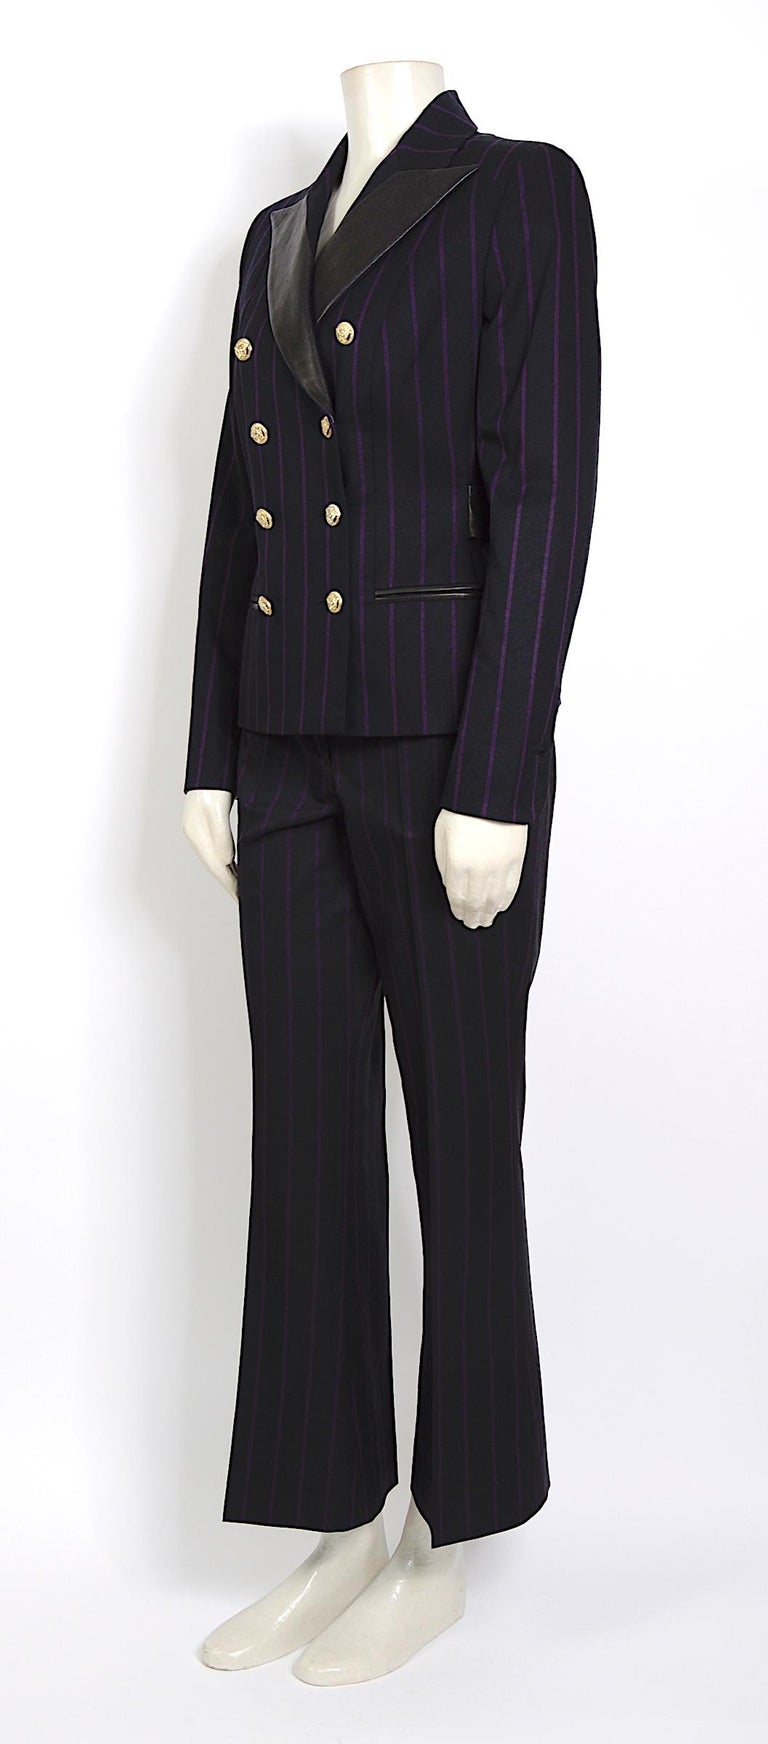 Vintage 1990s Gianni Versace purple striped black wool/silk & leather detail set In Excellent Condition For Sale In Antwerp, BE